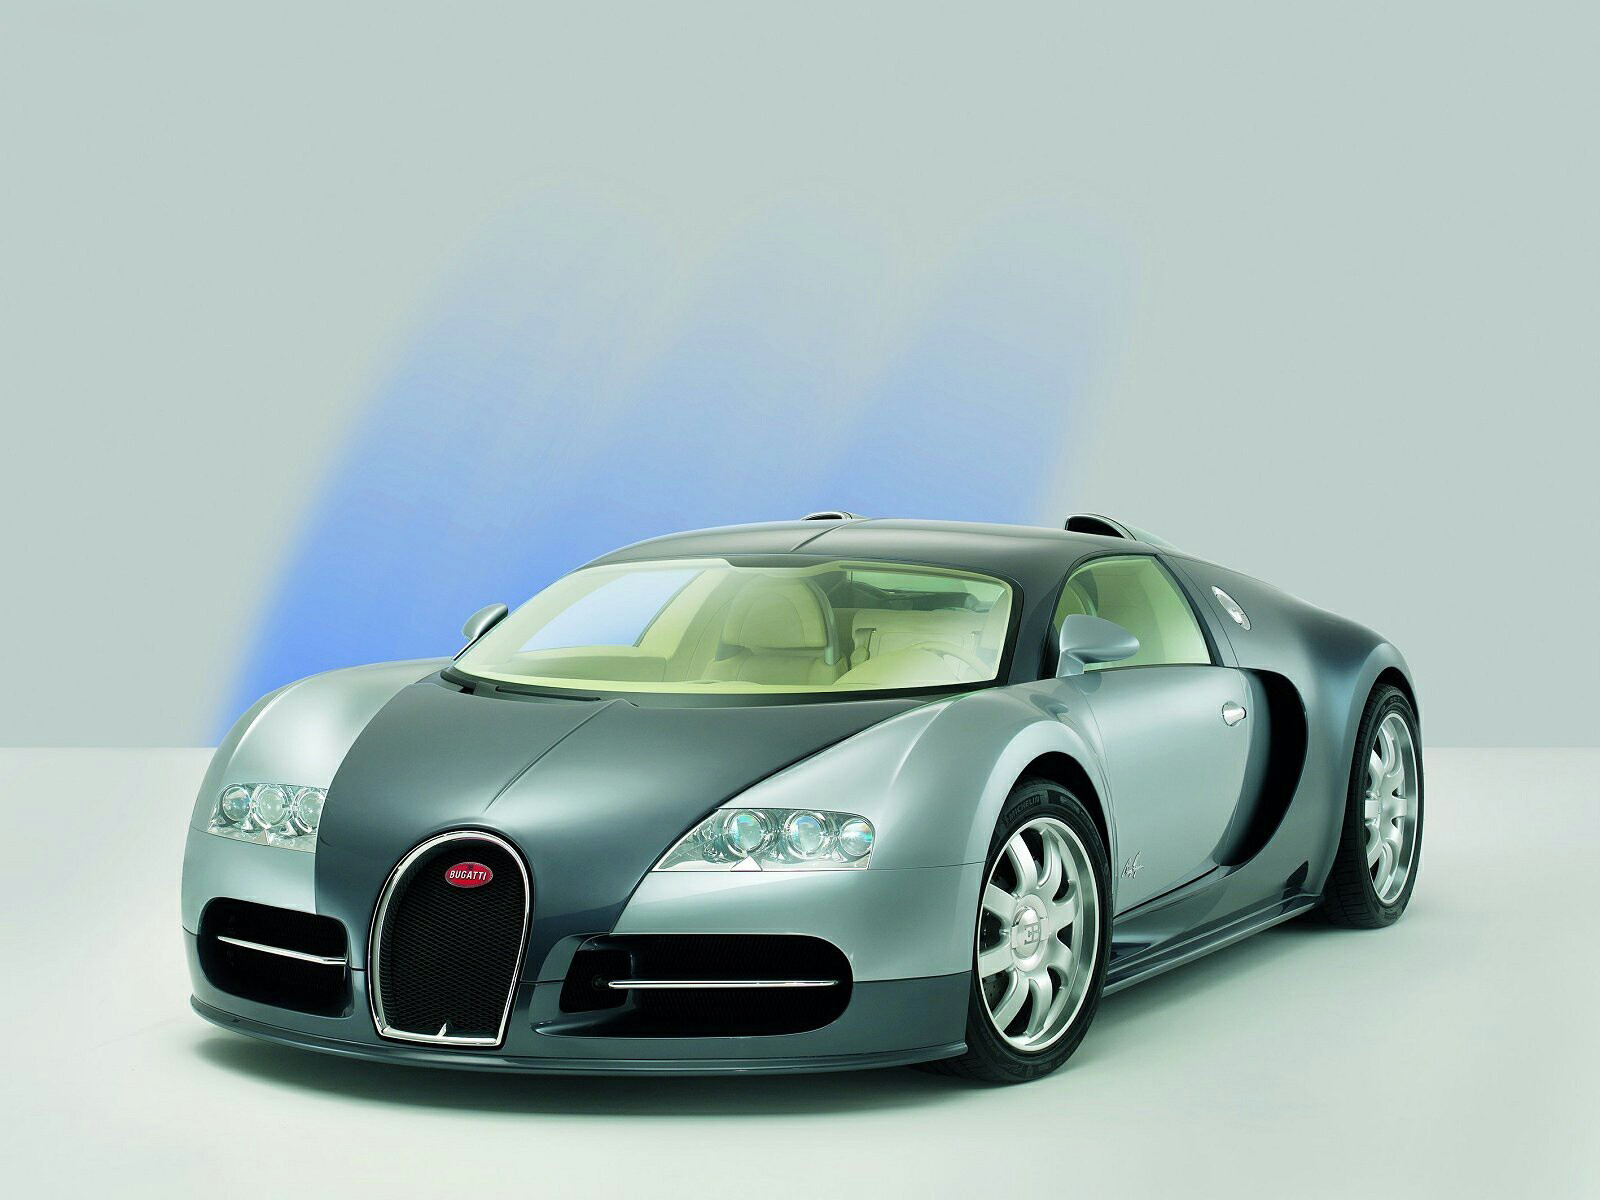 bugatti veyron wallpapers for windows 8 windows 8 wallpapers. Black Bedroom Furniture Sets. Home Design Ideas